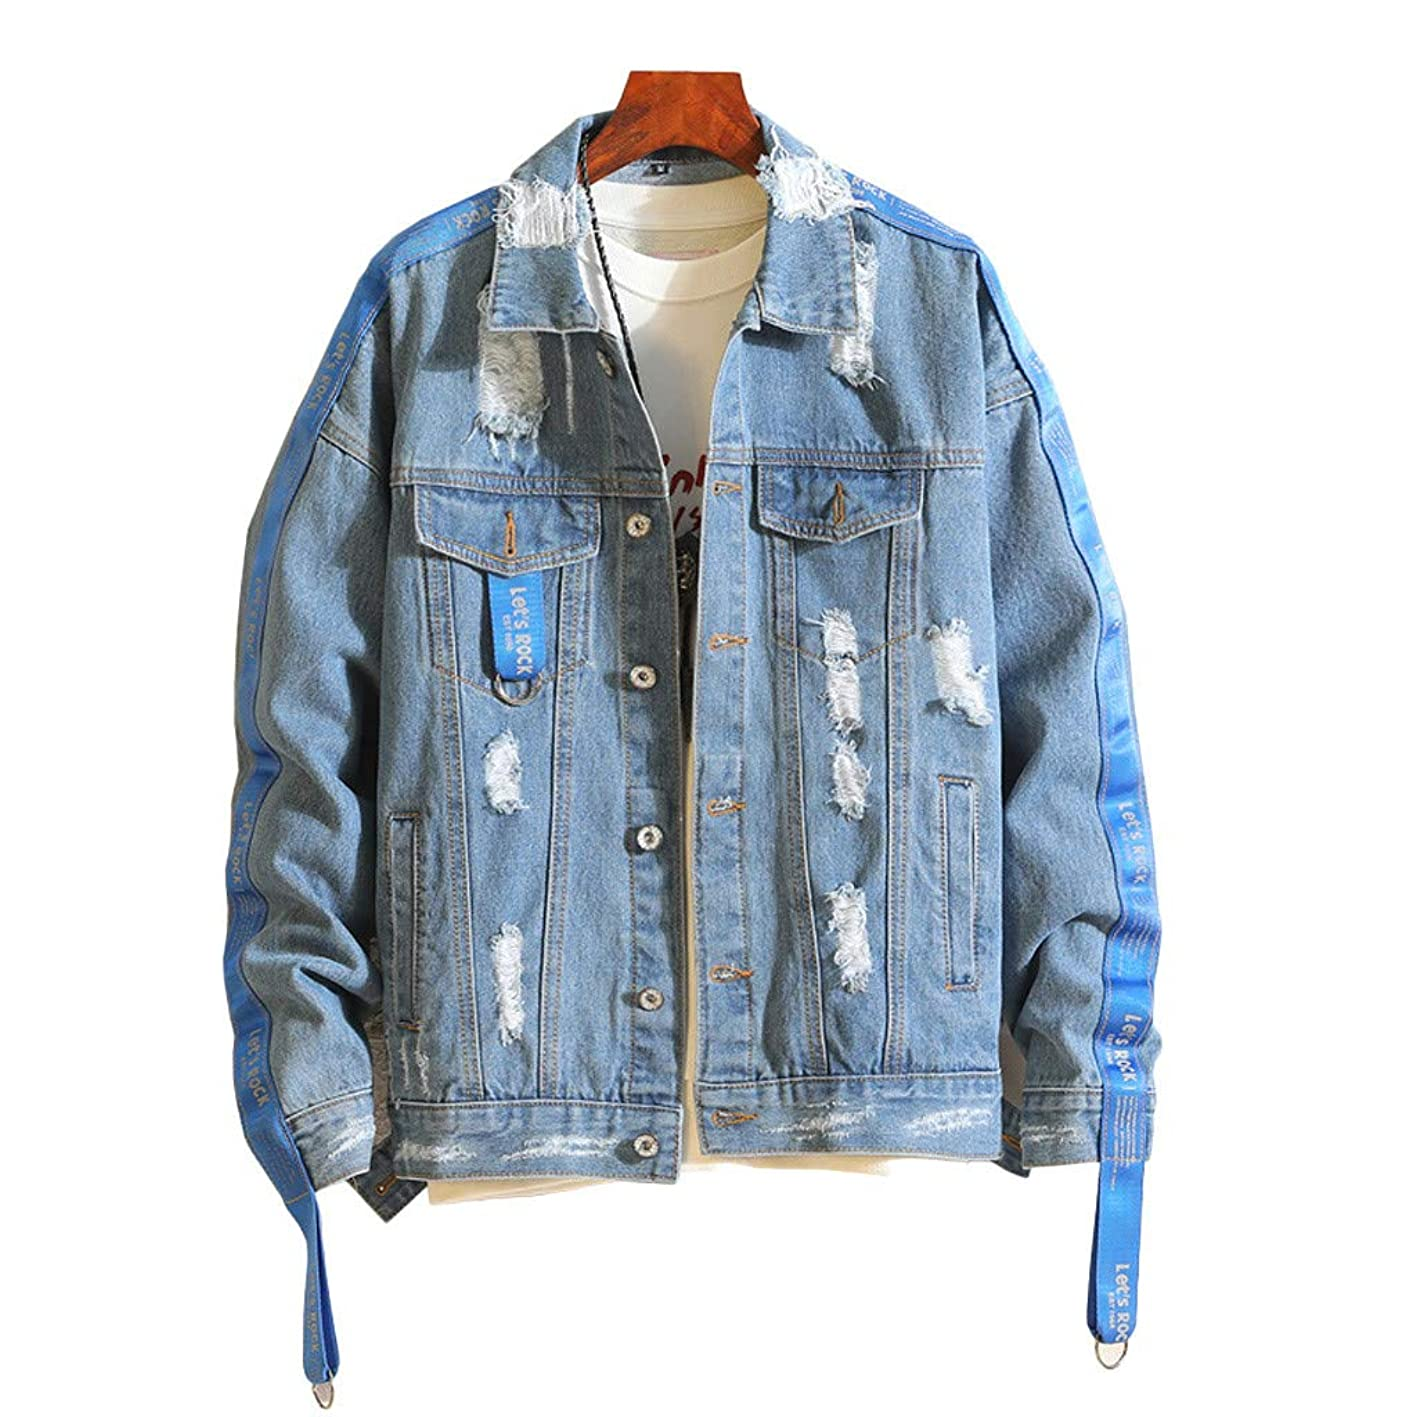 Thin Distressed Denim Jacket Men Autumn Winter Casual Vintage Wash Coat pfjjwyripcg886